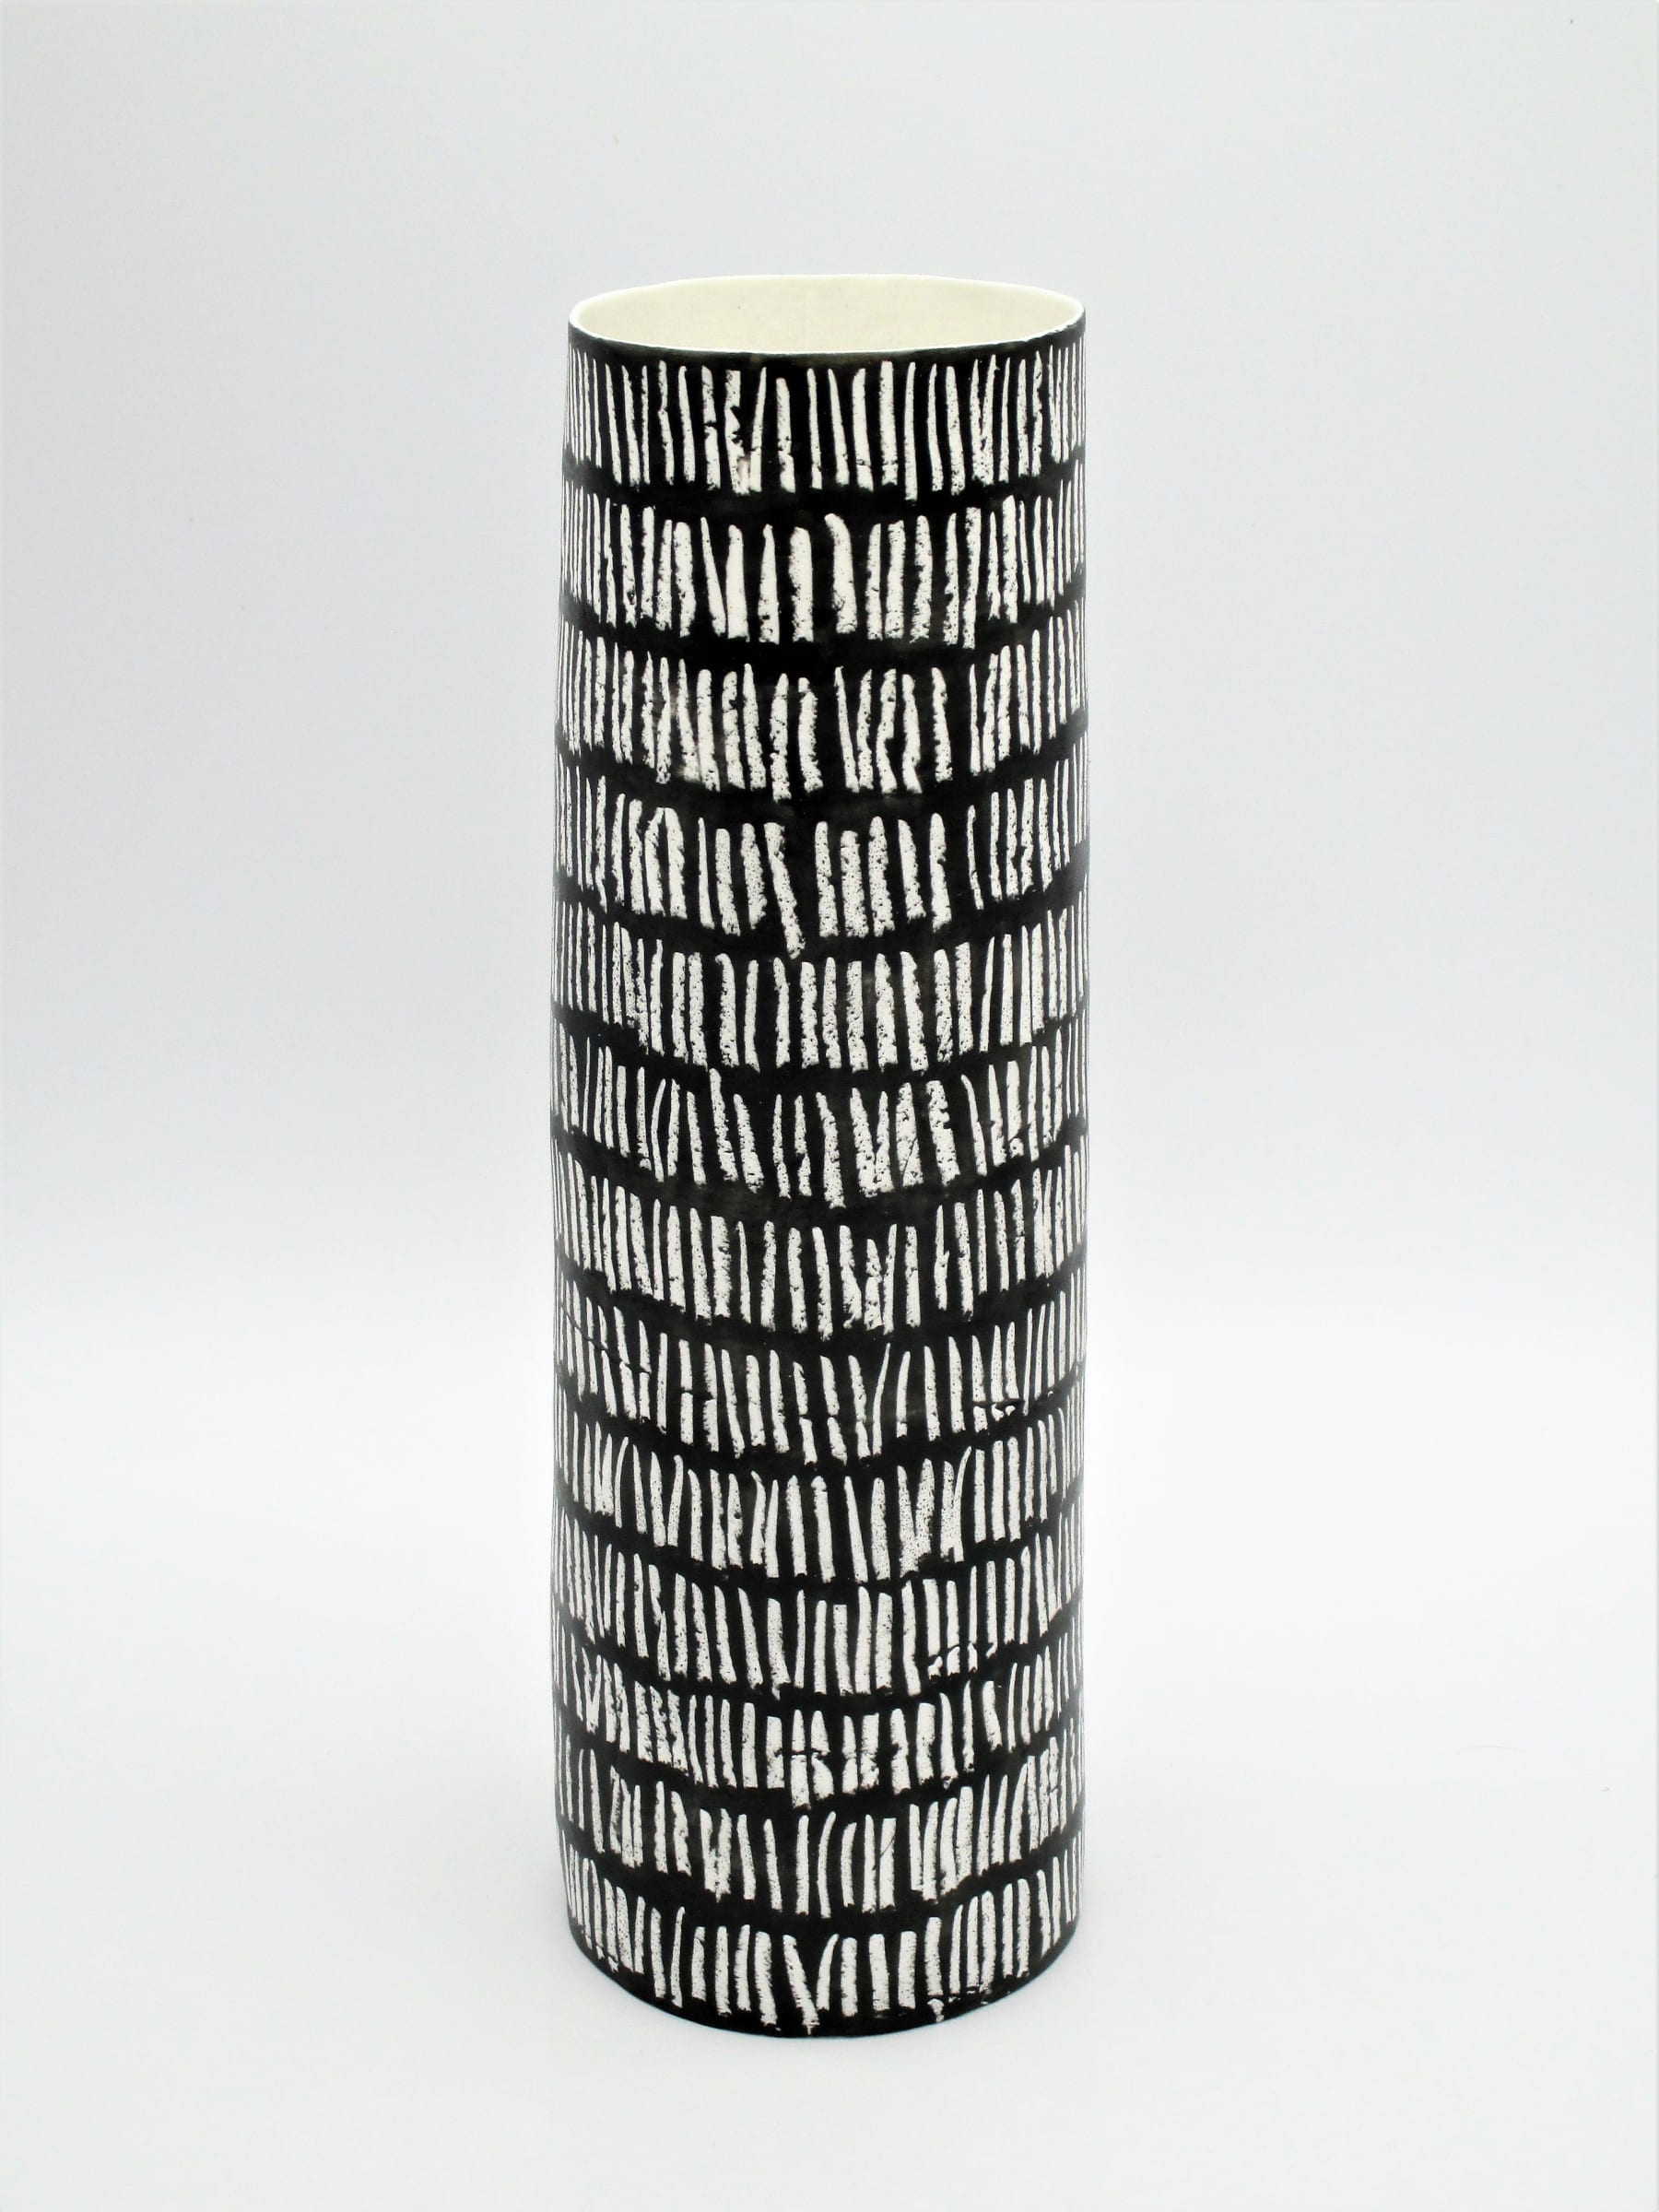 """<span class=""""link fancybox-details-link""""><a href=""""/artists/226-jane-muende/works/7163-jane-muende-velvet-black-cylinder-with-repeated-drawn-verticle-line-2020/"""">View Detail Page</a></span><div class=""""artist""""><strong>Jane Muende</strong></div> <div class=""""title""""><em>Velvet black cylinder with repeated drawn verticle line in white wax crayon</em>, 2020</div> <div class=""""medium"""">Hand built in paper porcelain</div> <div class=""""dimensions"""">24 cm x 7.5 cm </div><div class=""""price"""">£245.00</div><div class=""""copyright_line"""">Own Art: £24.50 x 10 months 0% APR</div>"""